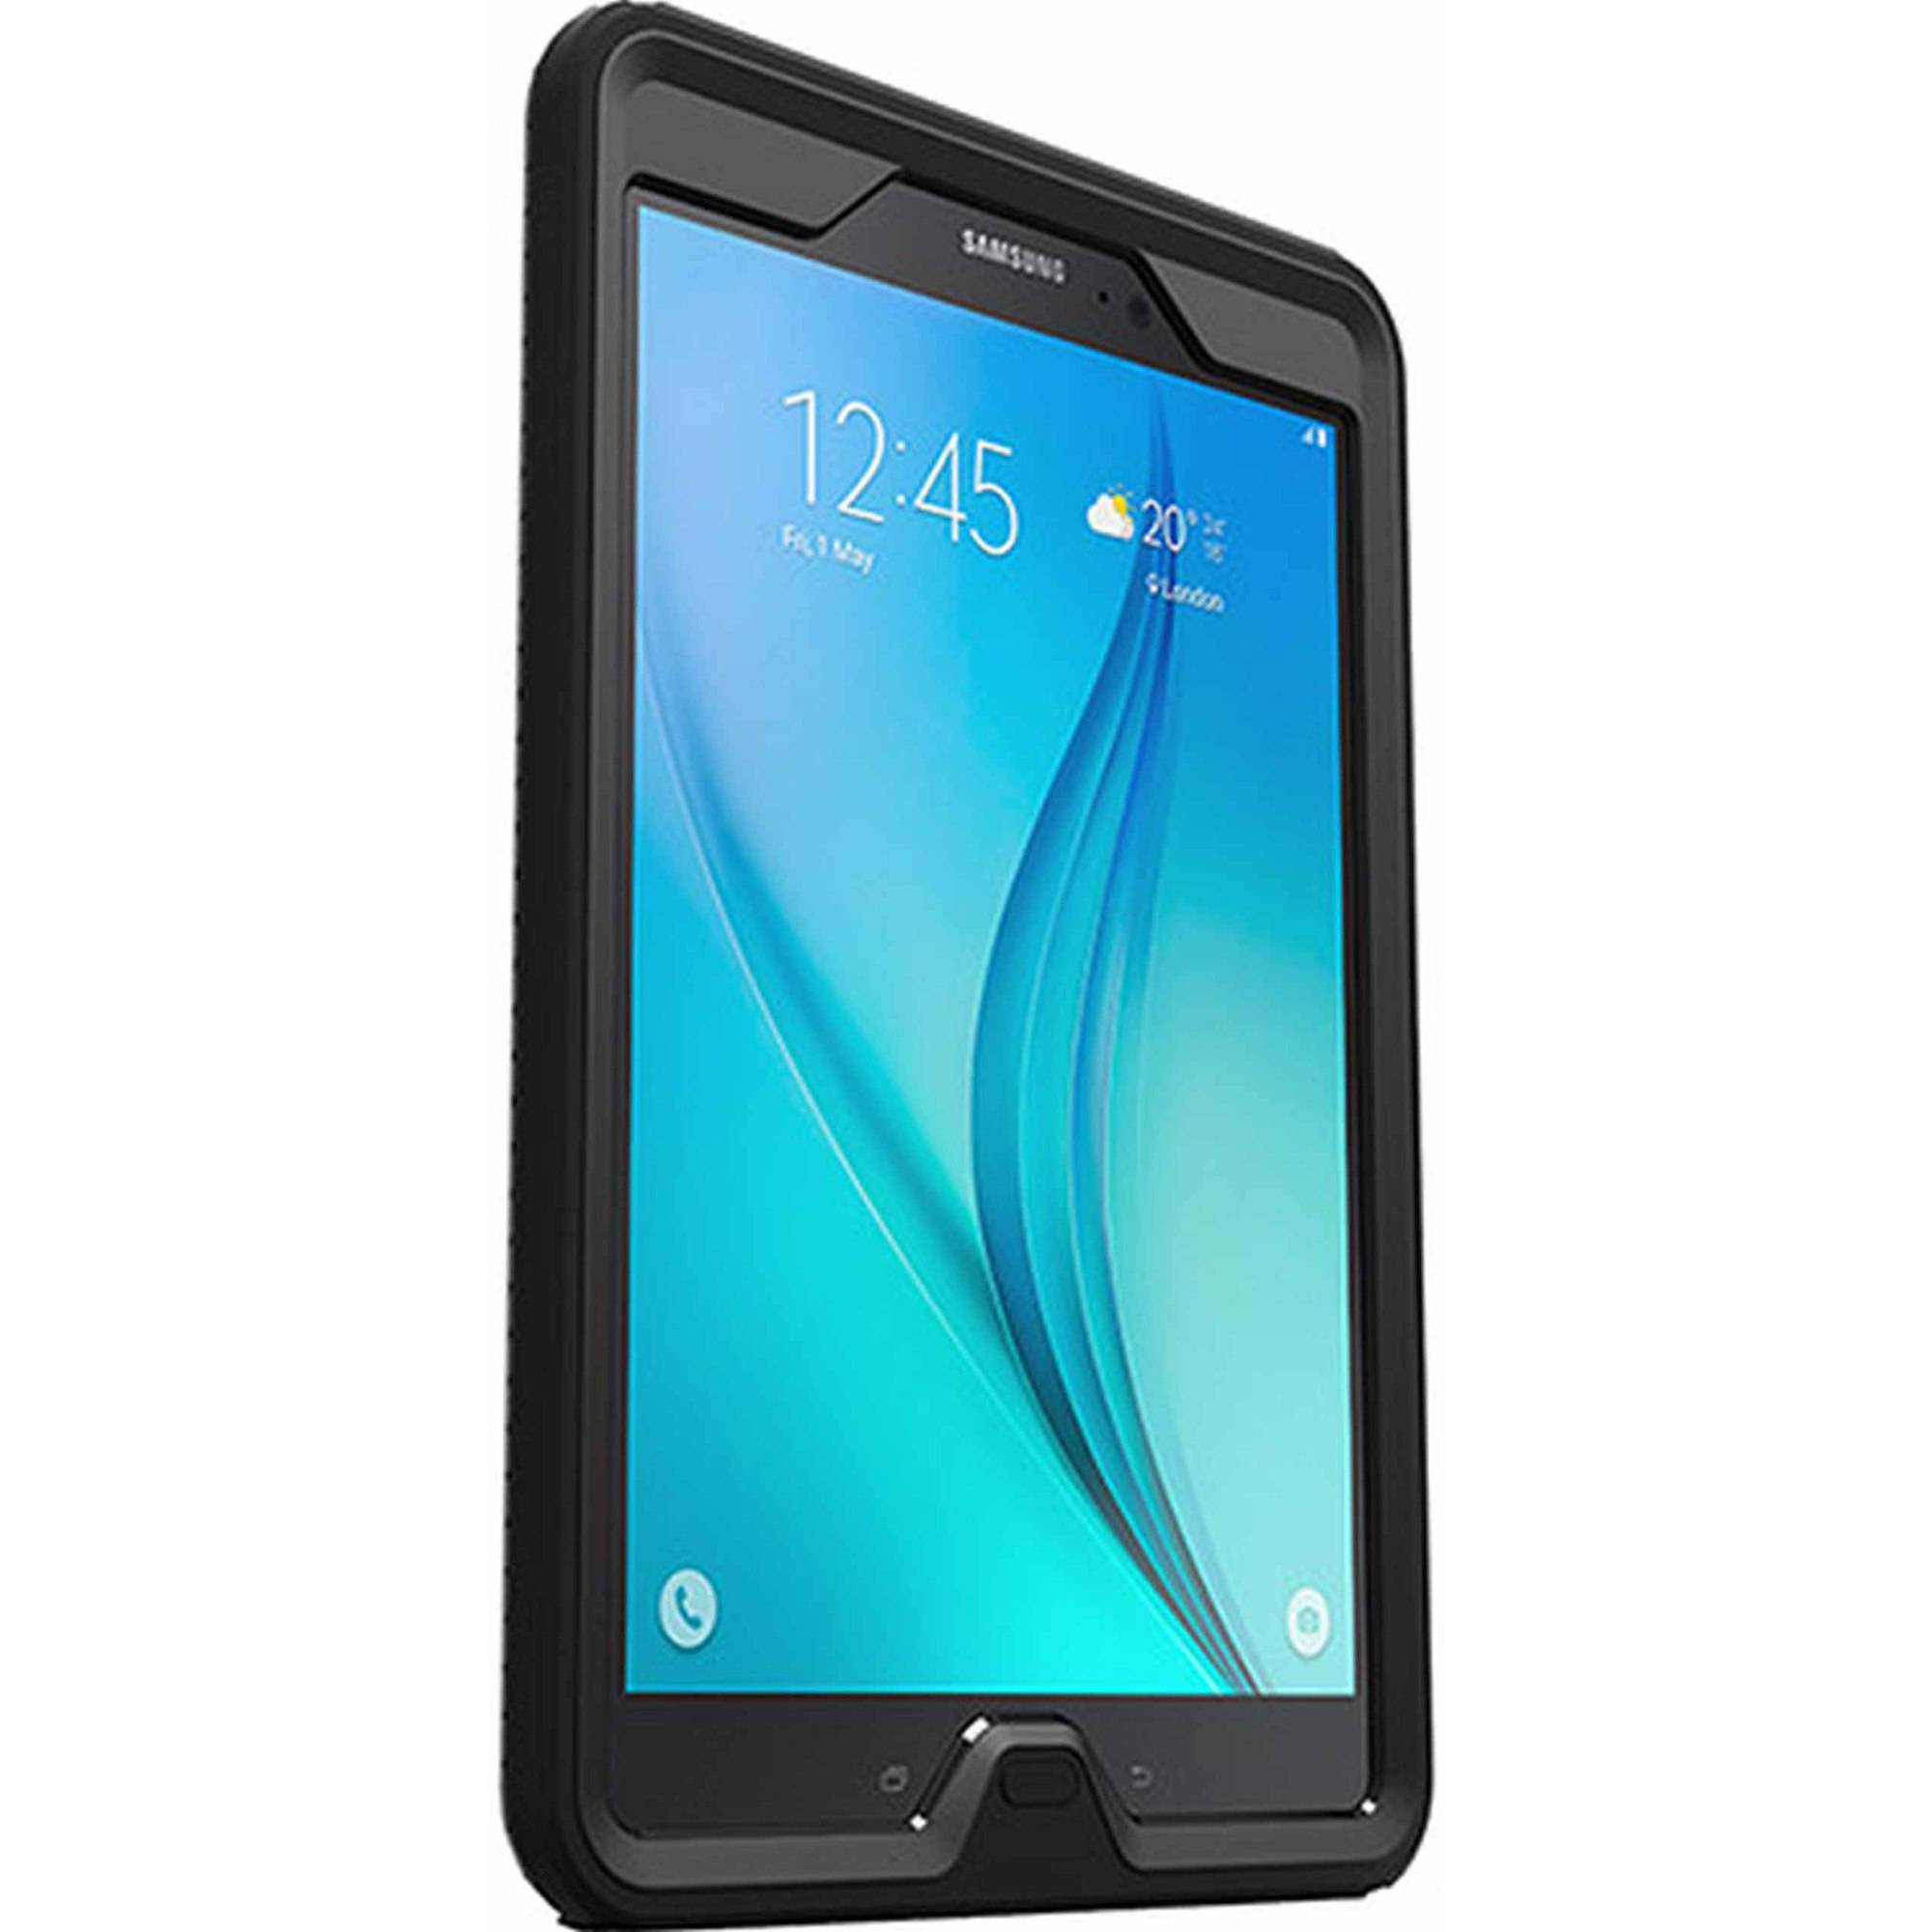 huge selection of 99869 3c8f2 OtterBox Defender Series Case for Samsung Galaxy Tab A 9.7, Black